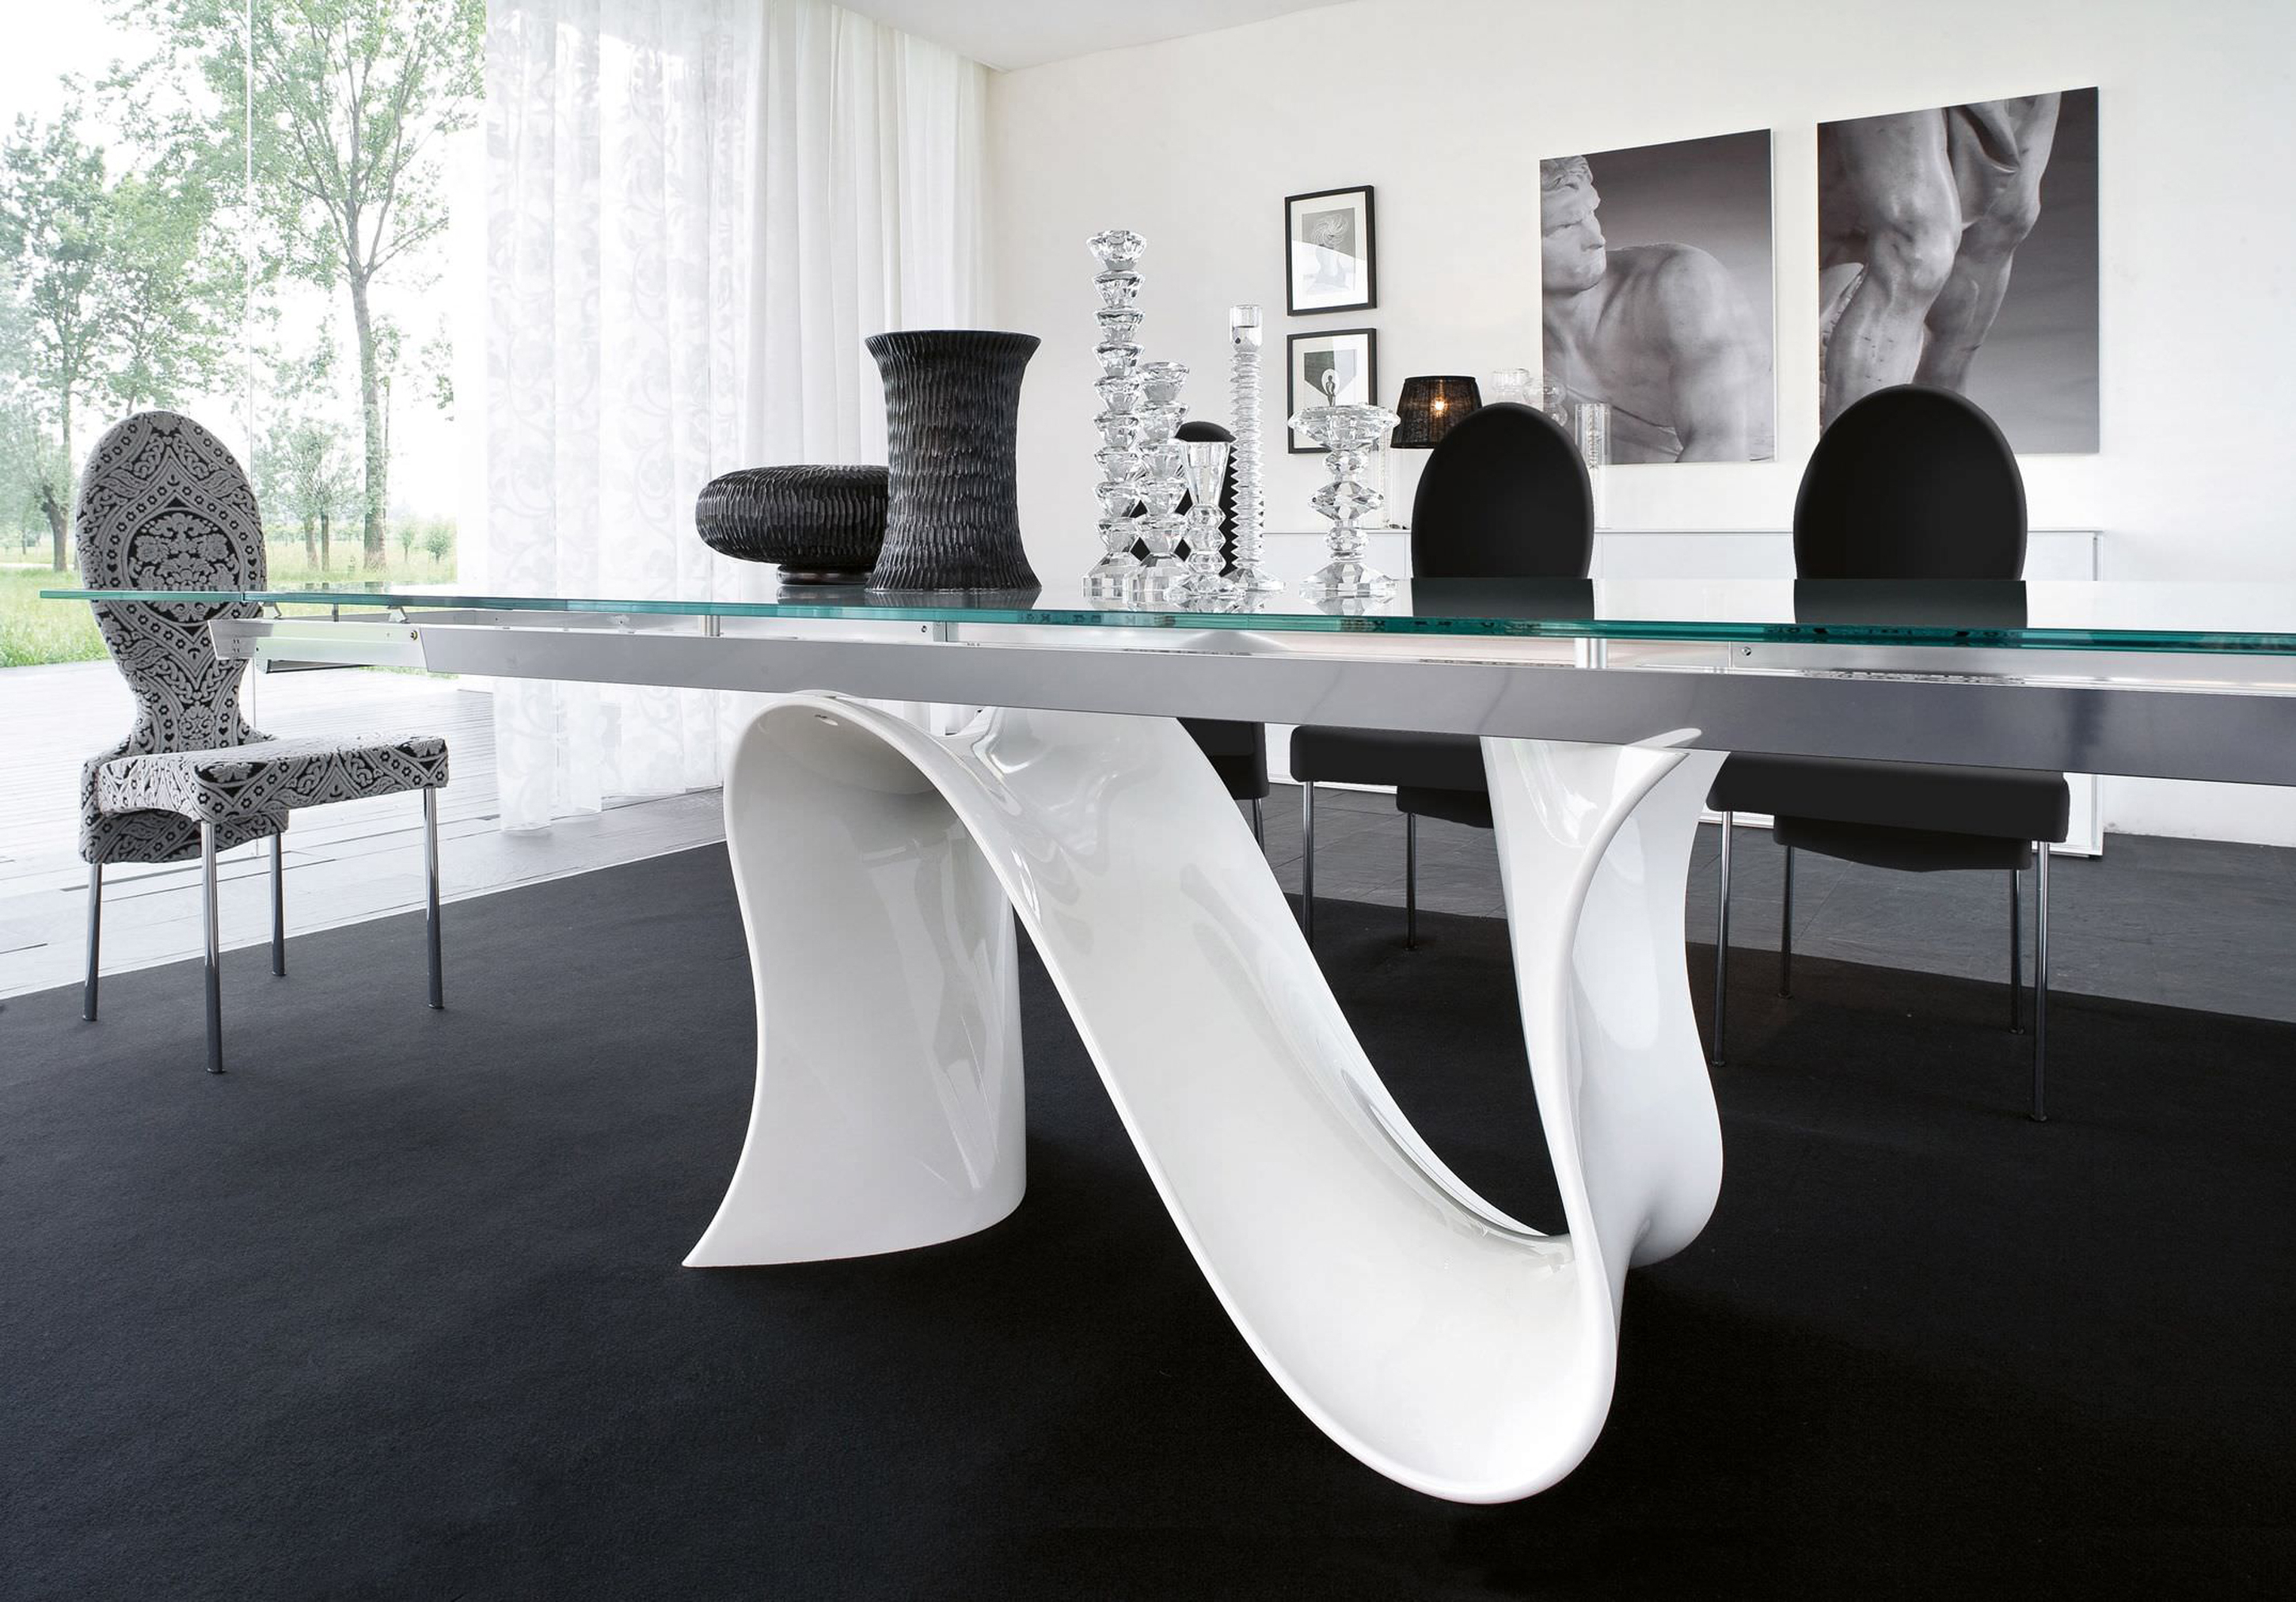 Luxury Glass Top Dining Table Design Idea With Unique White Base Black White Chairs And Lack Floor Tile Cool Glass Top Dining Table Design Ideas With Unique Bases (Image 59 of 123)